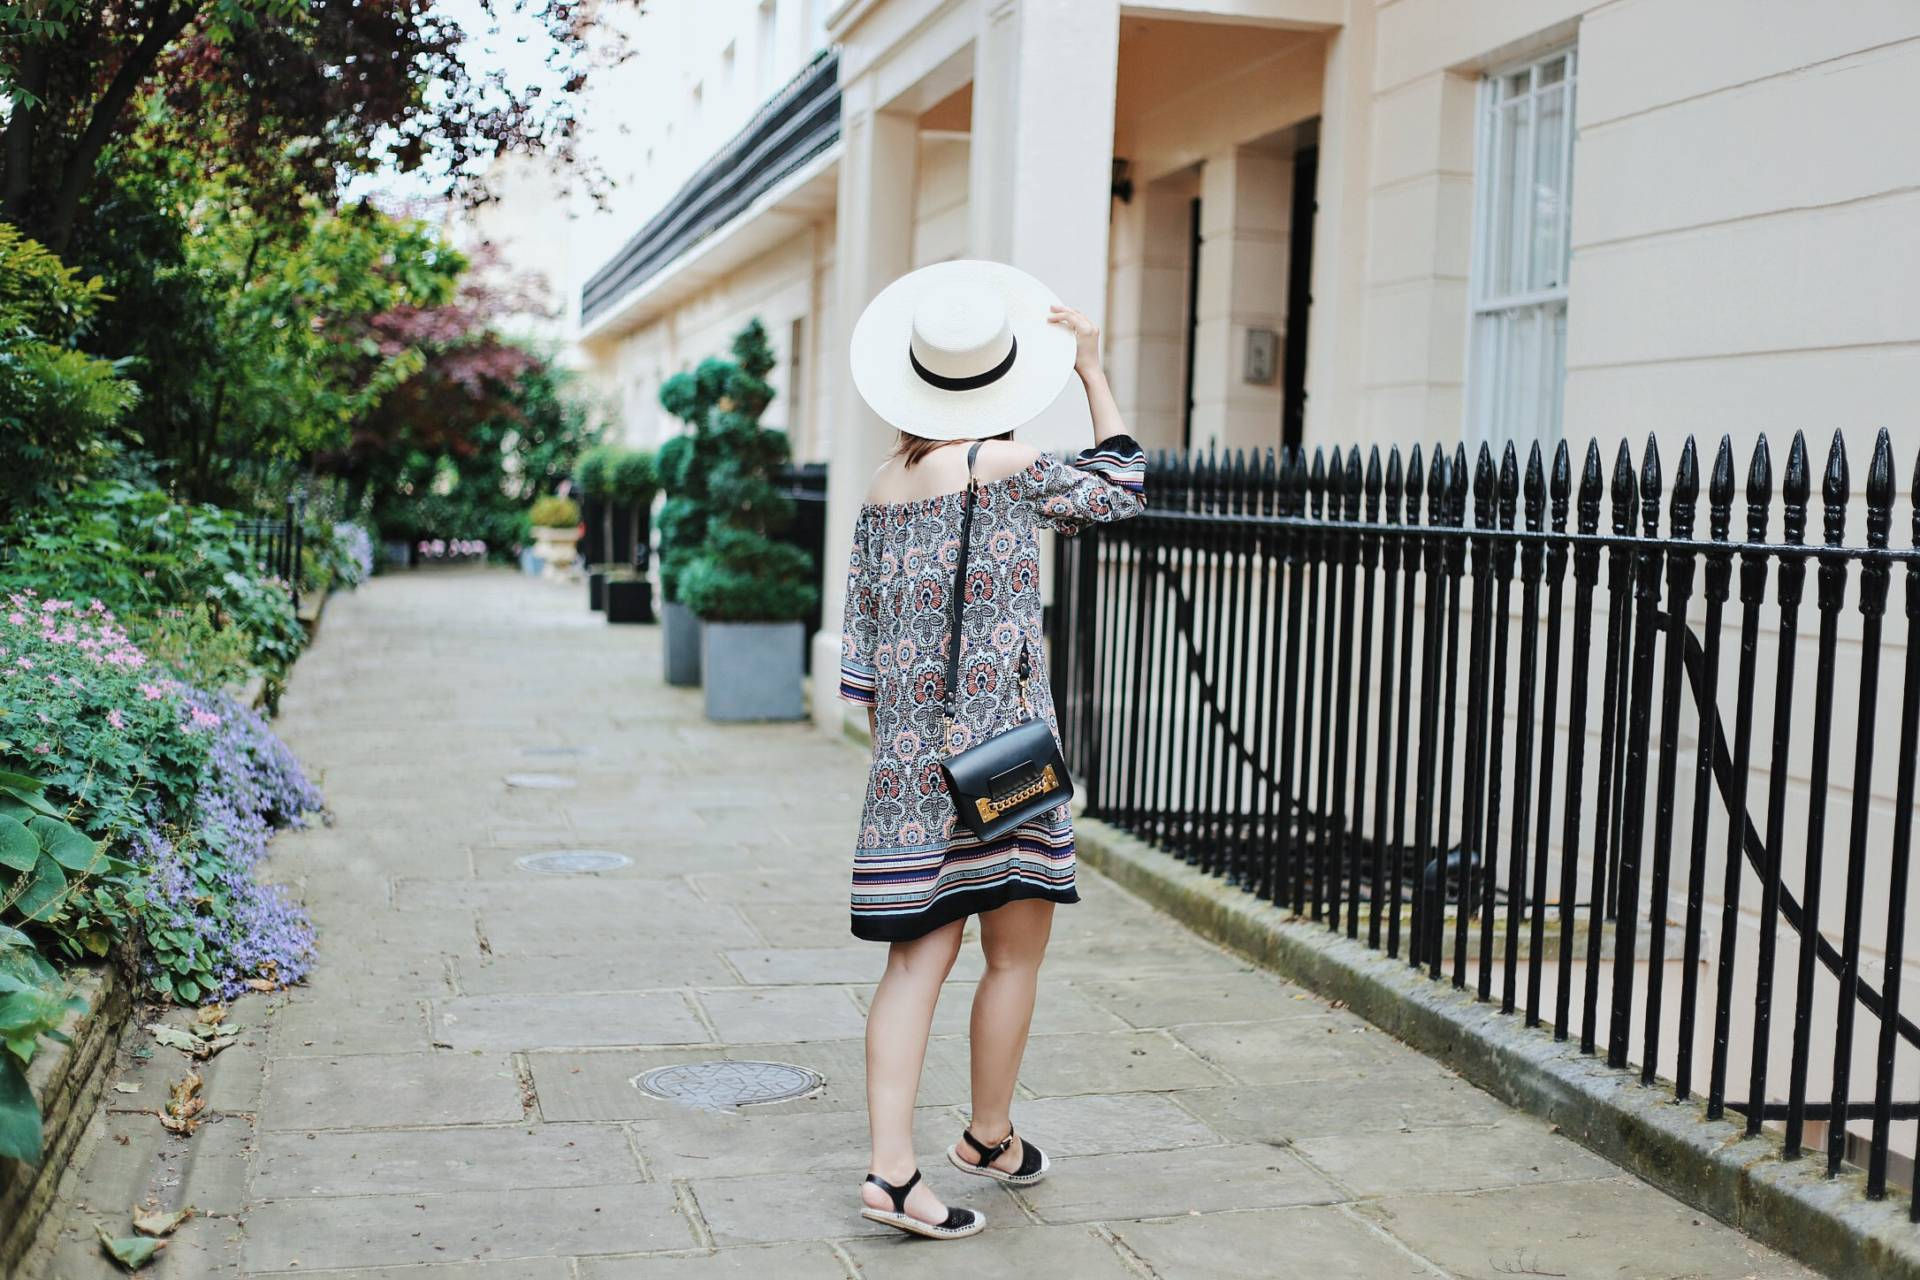 Dreaming of Chanel wears Little Mistress paisley print dress with espadrilles.